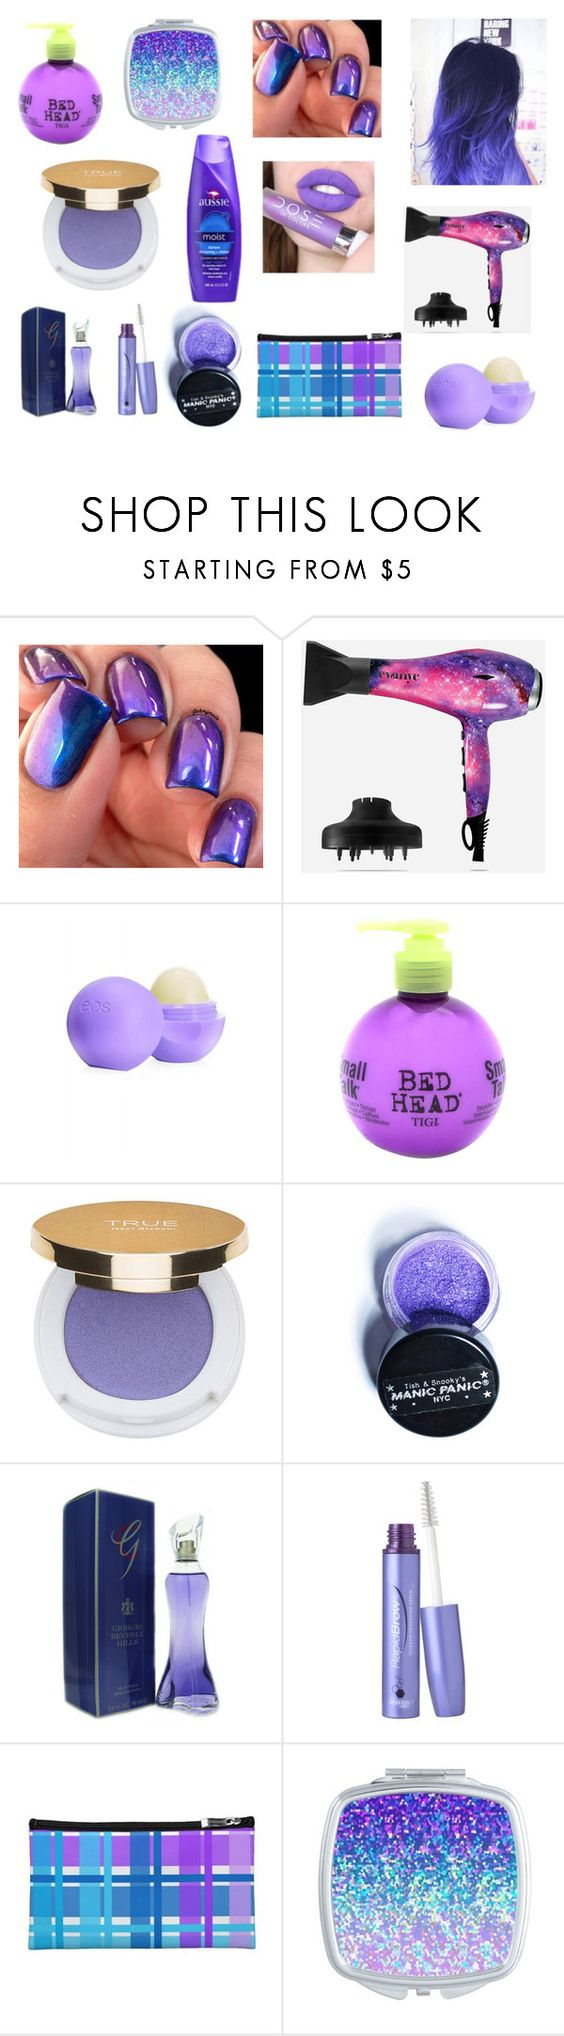 """Purple Makeup"" by nmekonnen28 on Polyvore featuring beauty, Eva NYC, Eos, Bed Head by TIGI, Isaac Mizrahi, Manic Panic, Giorgio Beverly Hills and RapidLash"